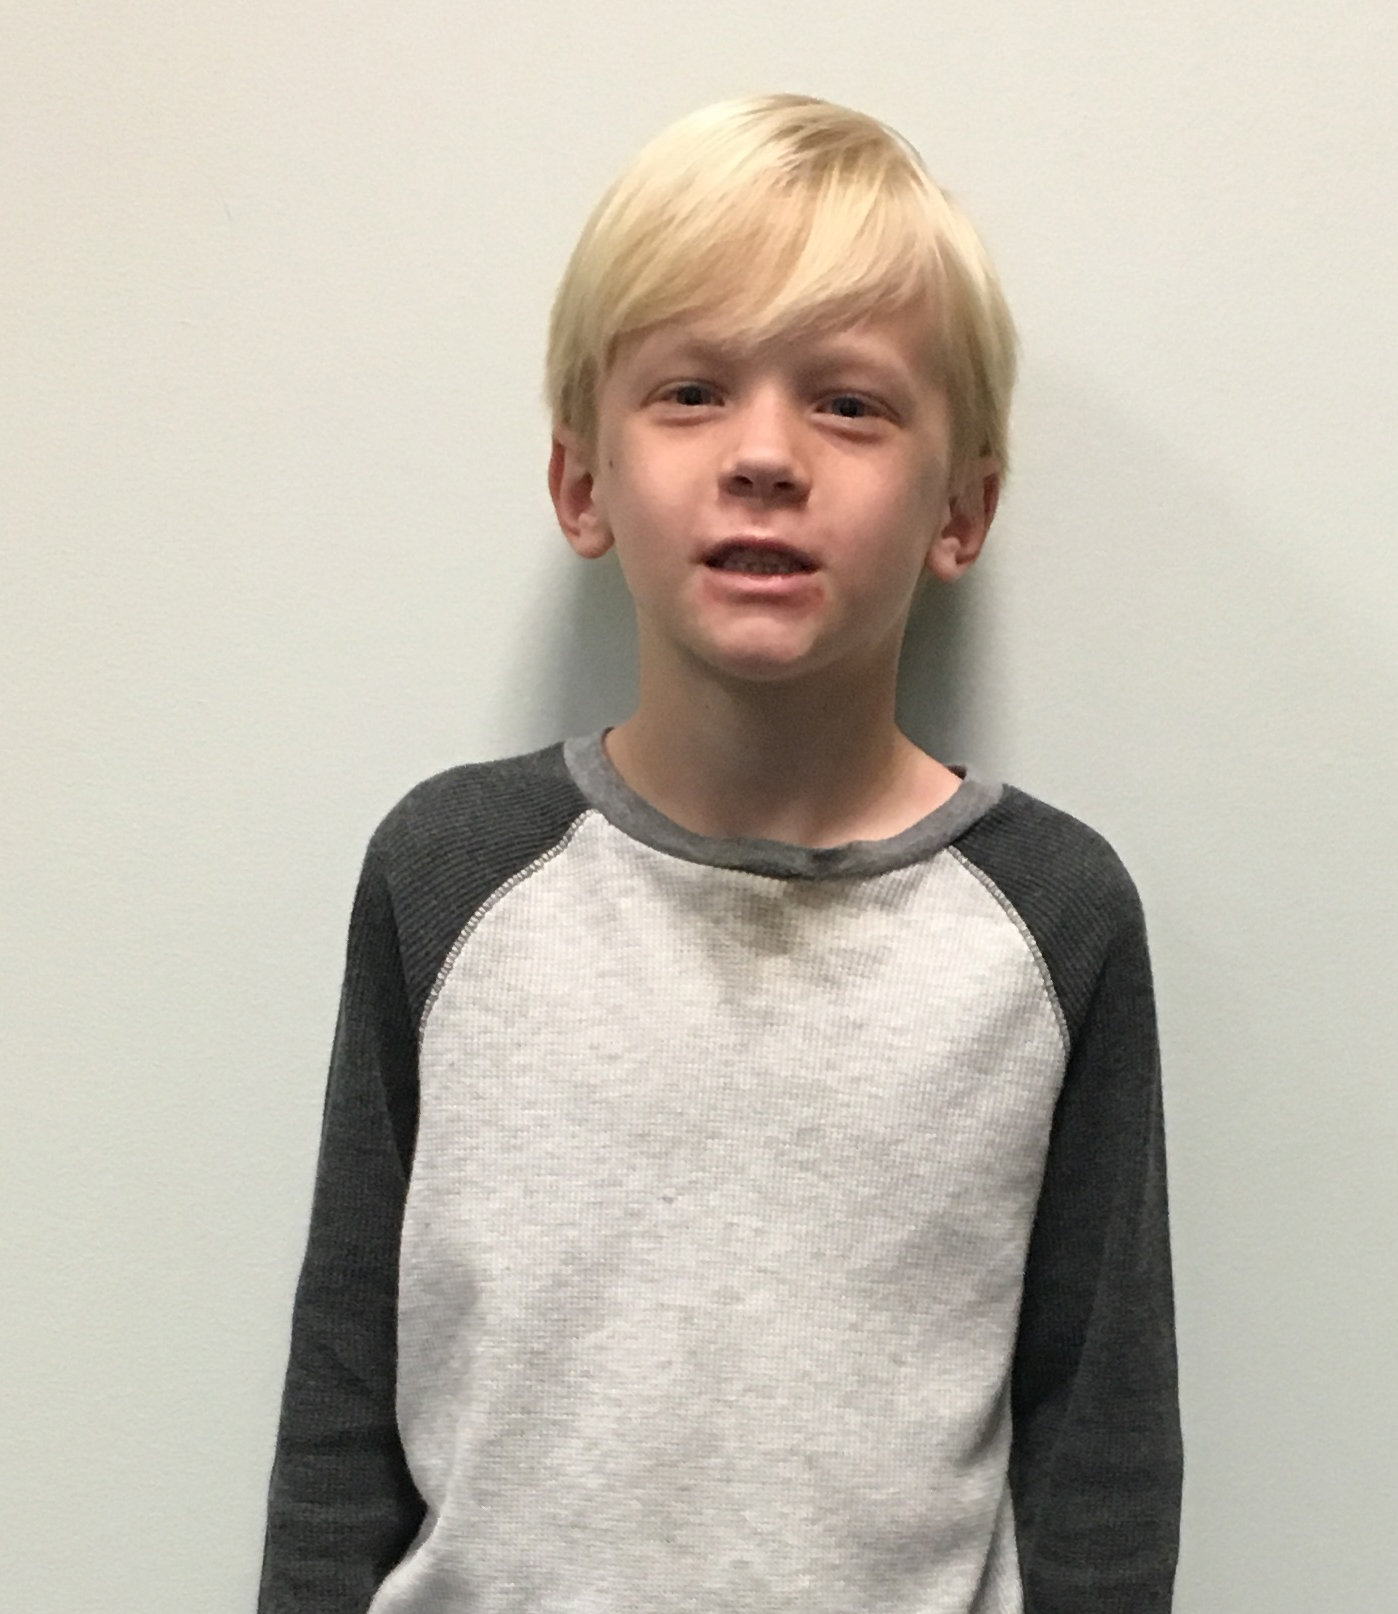 Kids should look for other things to do besides playing on their iPads, especially because the batteries don't last very long. I don't spend much time on my iPad at home. I'd rather bake cookies – or go outside and play!  Charlie Age 8